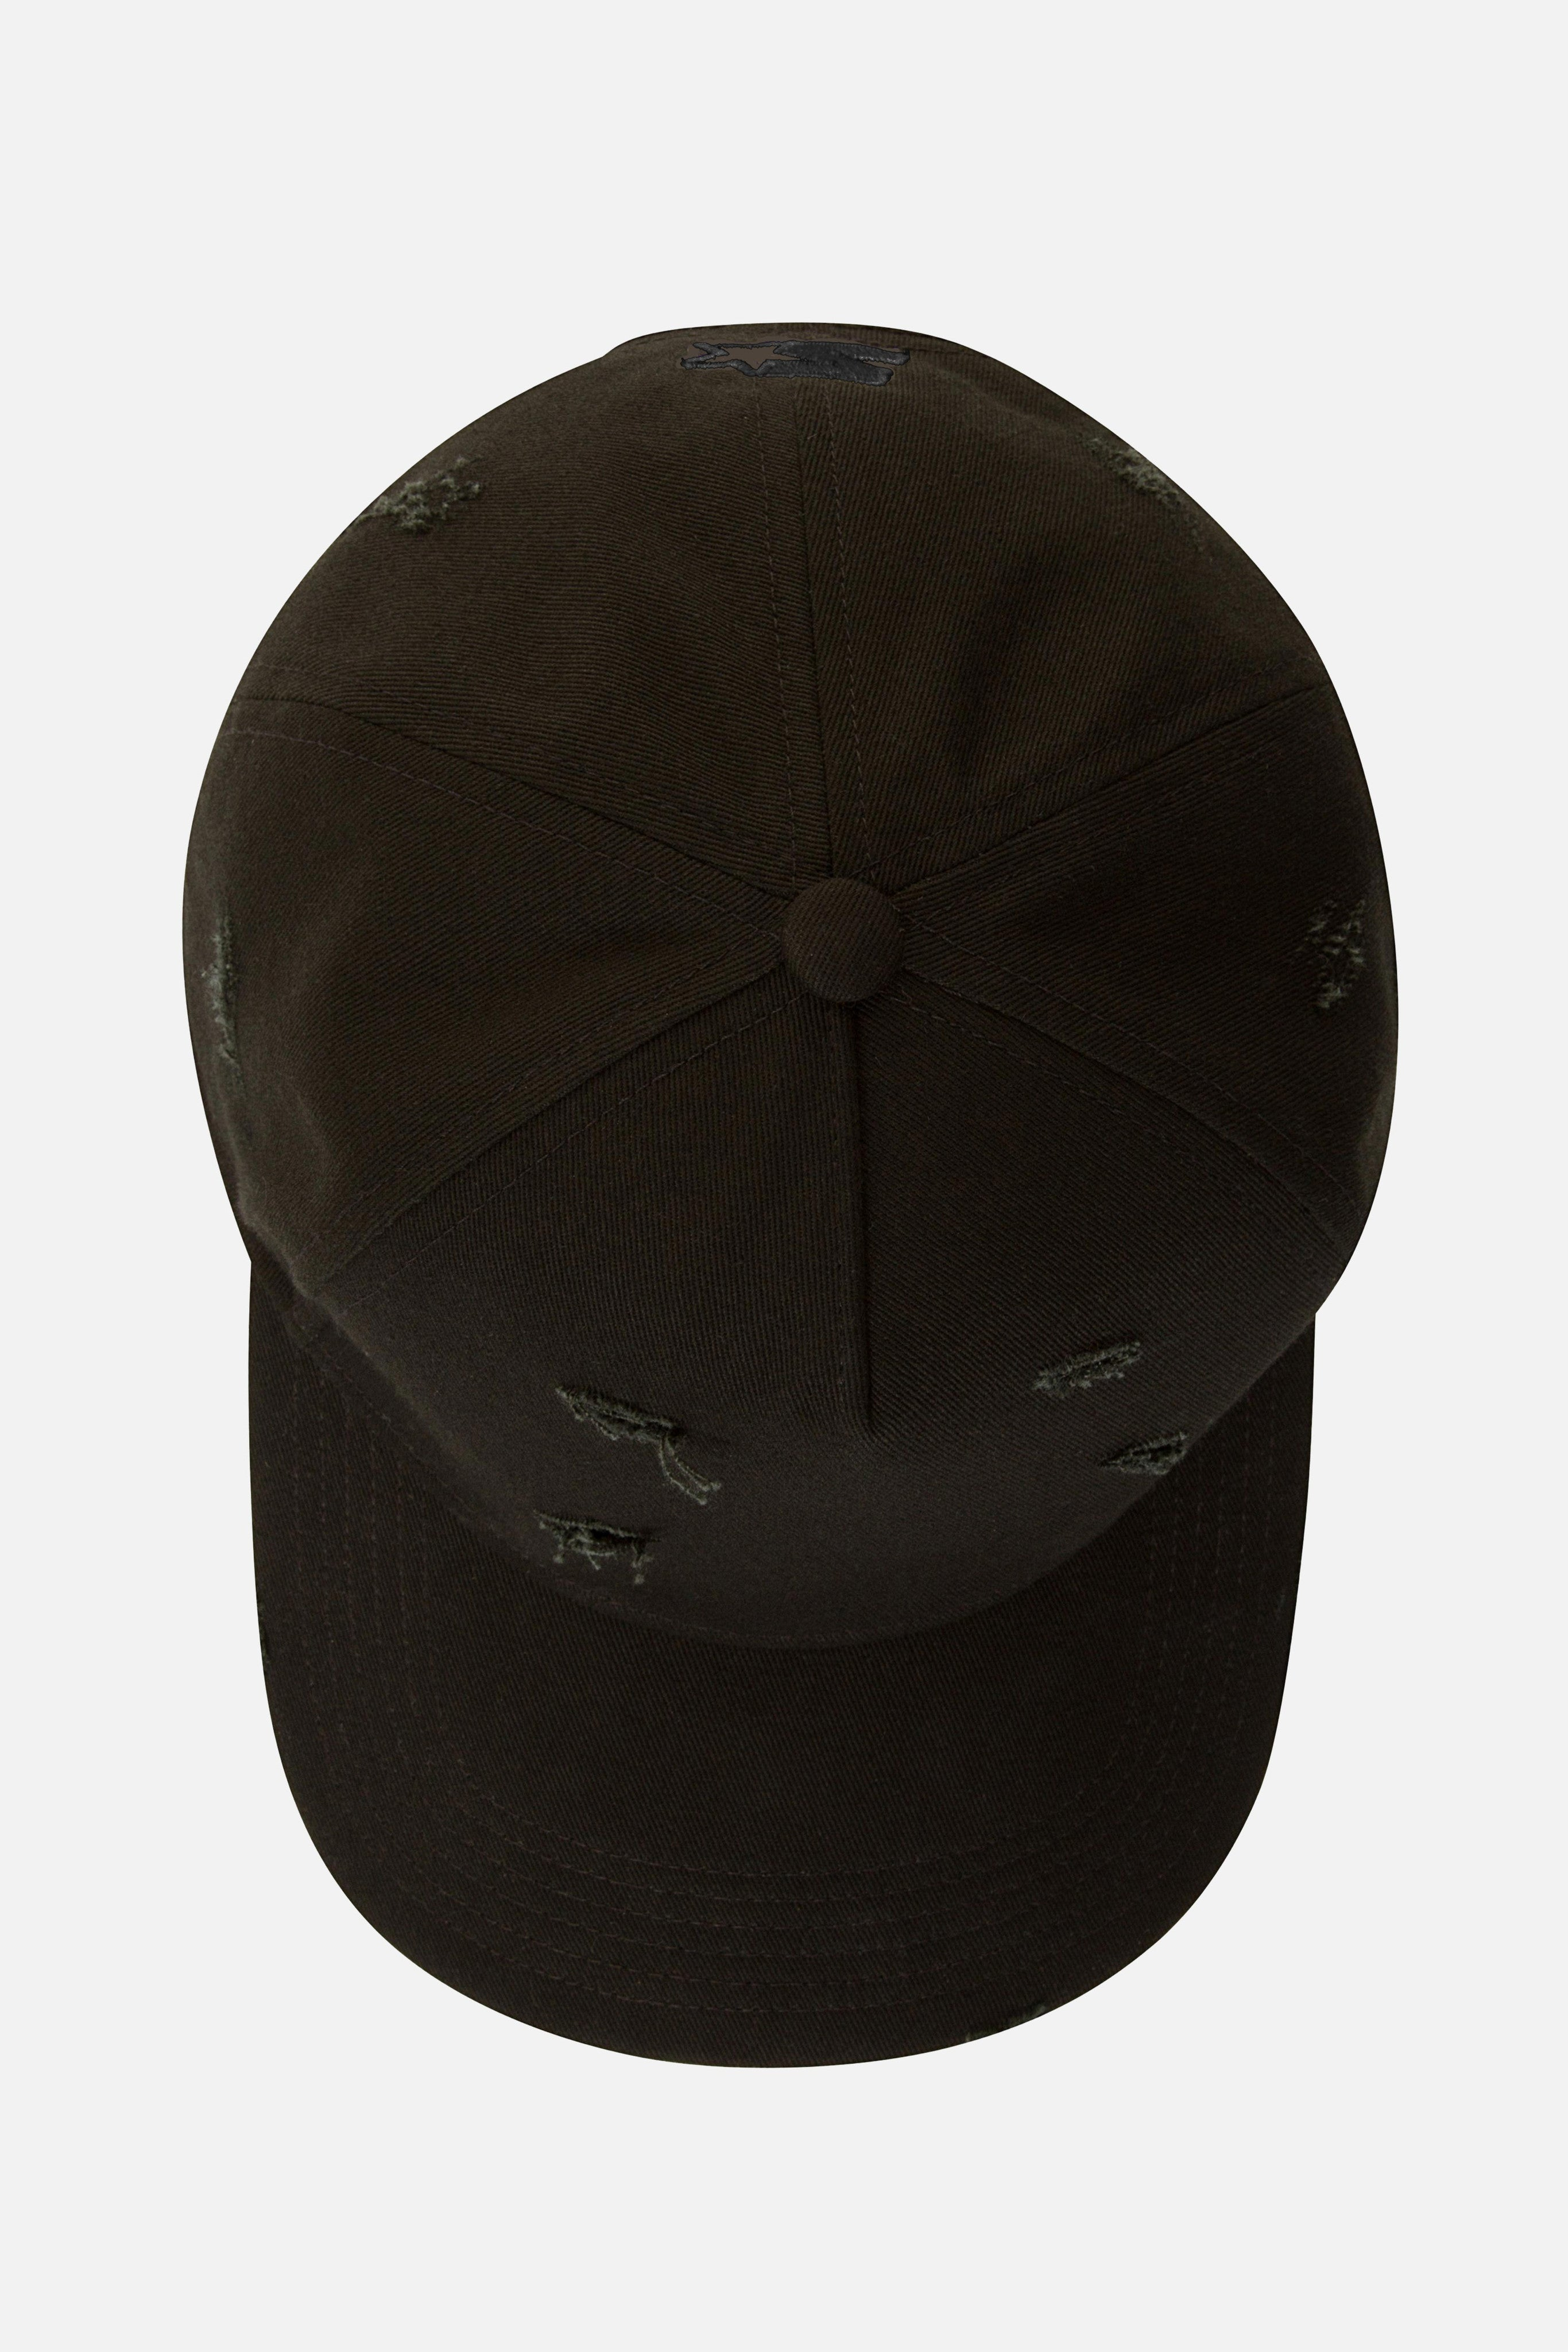 Avid & Co. x Starter® Black [ Distressed ] Trucker Hat